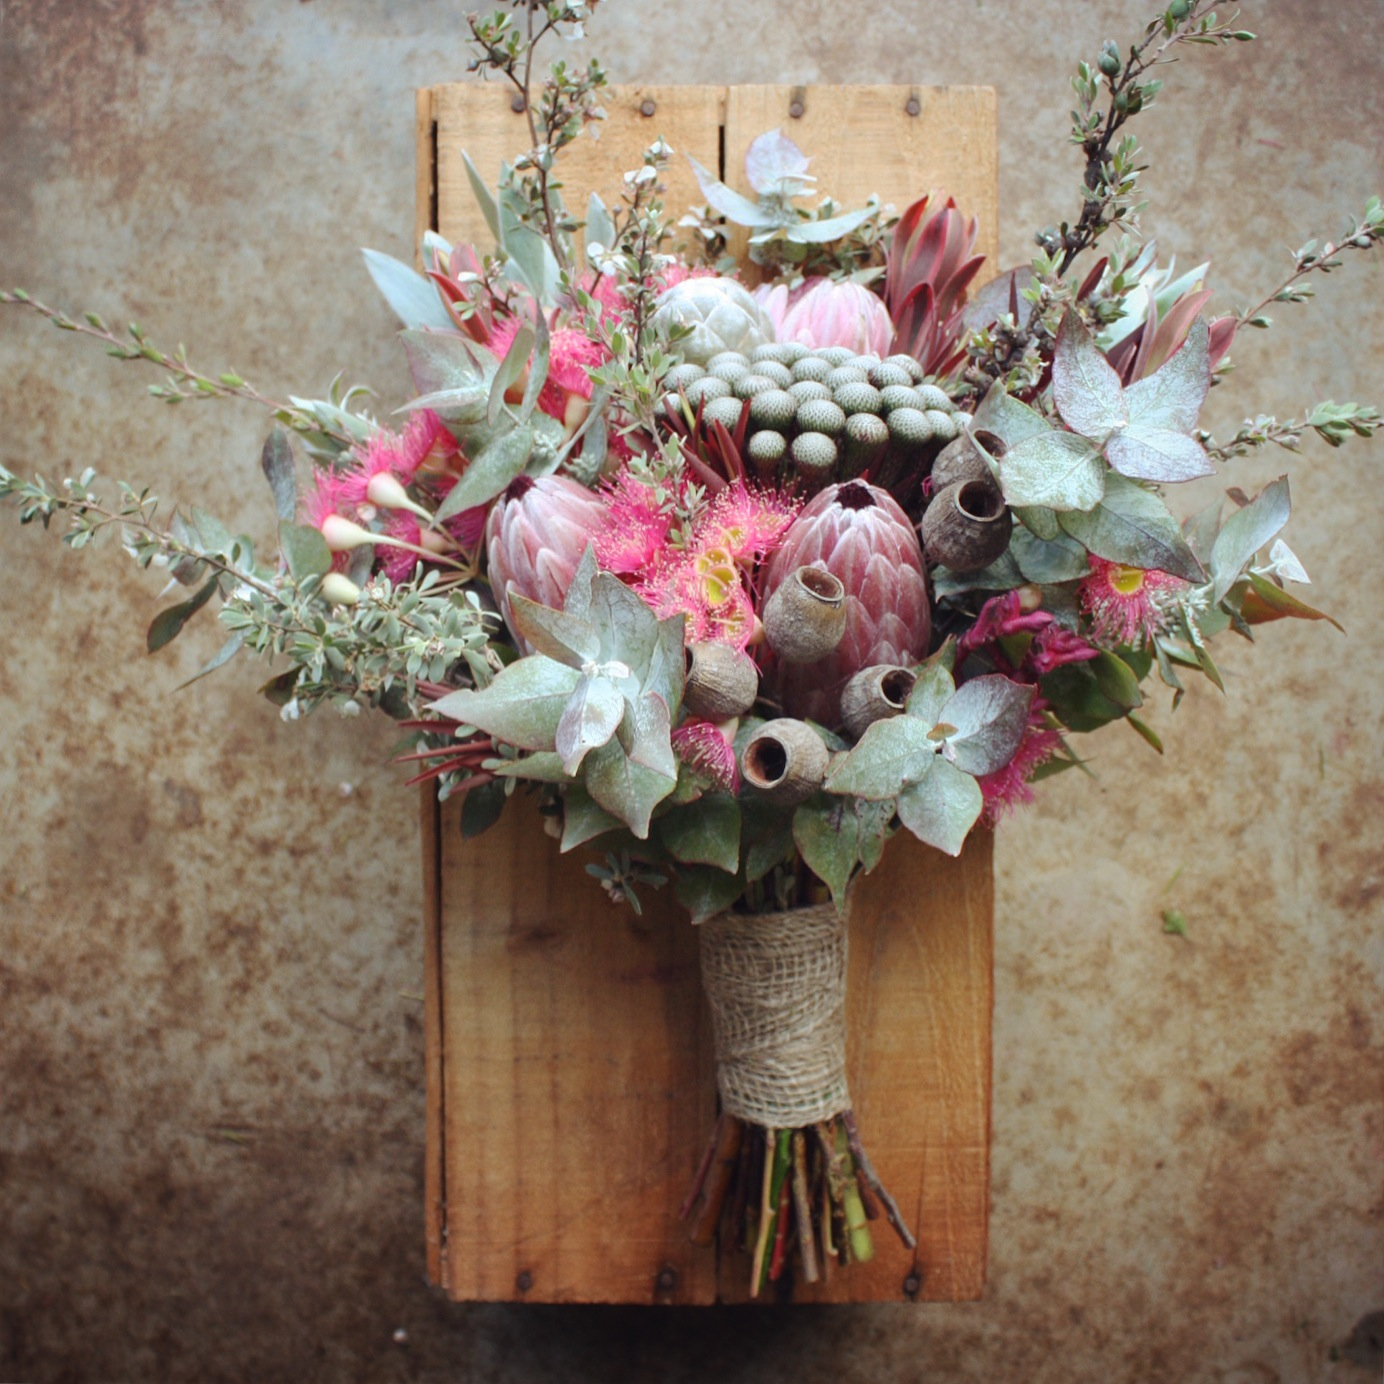 Flowers Wedding Ideas: Swallows Nest Farm: DIY Bush Wedding In March